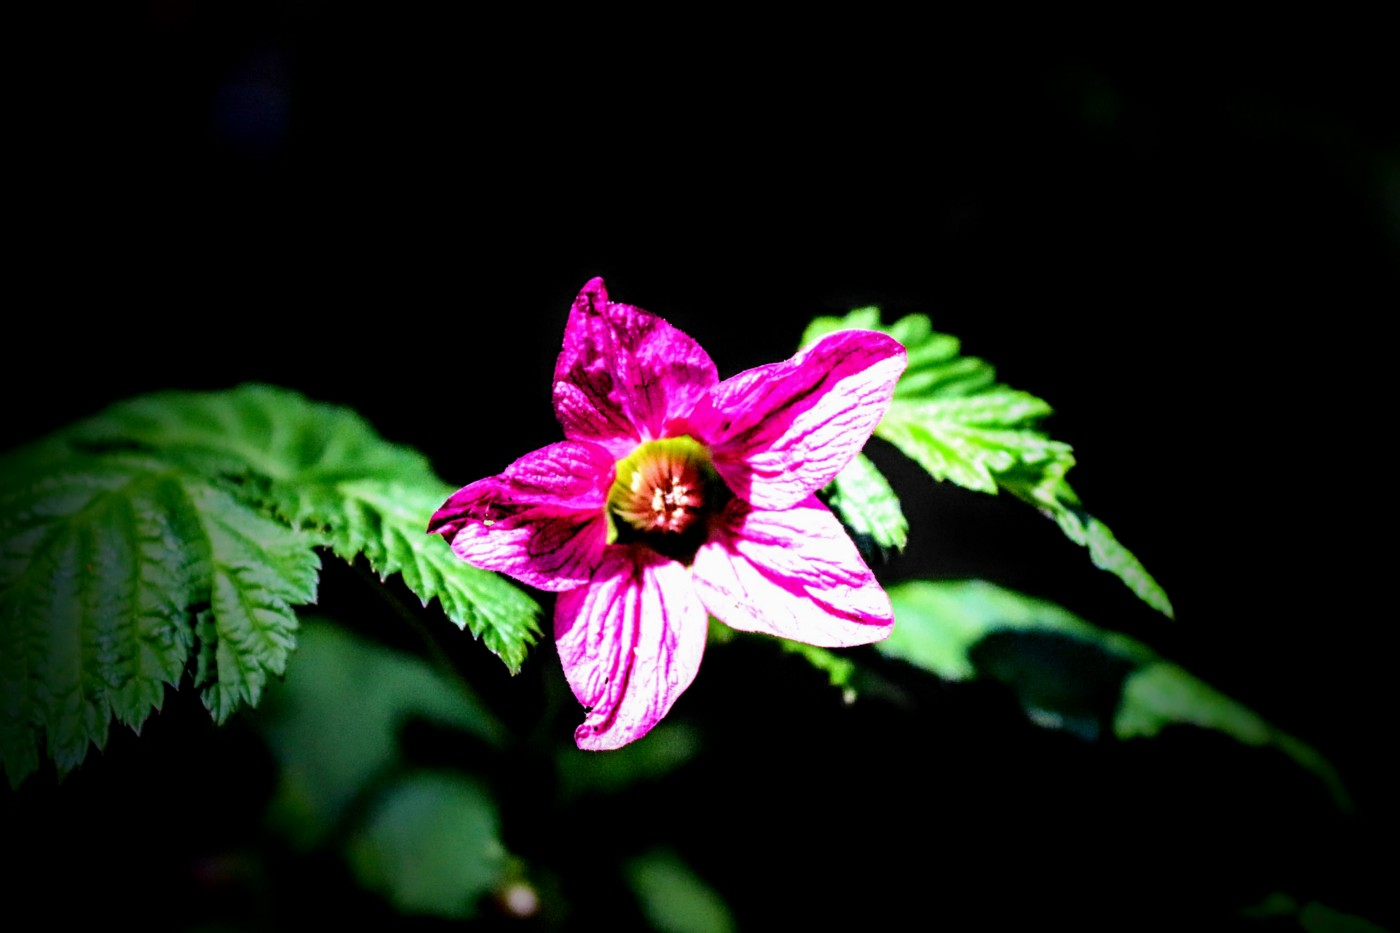 a flower well lit on a black background